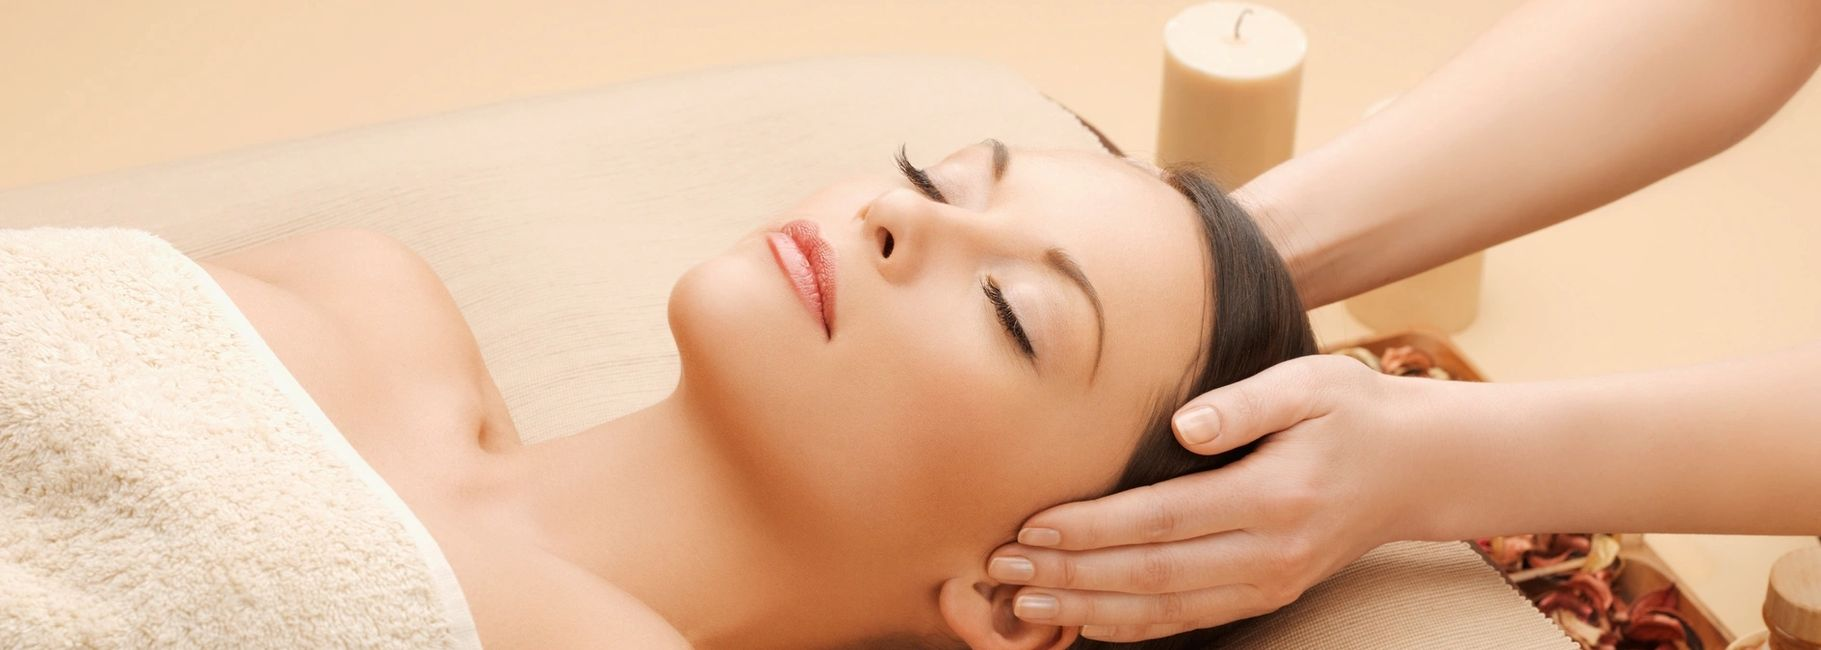 Facials with all natural products for skin problems and youthful skin.